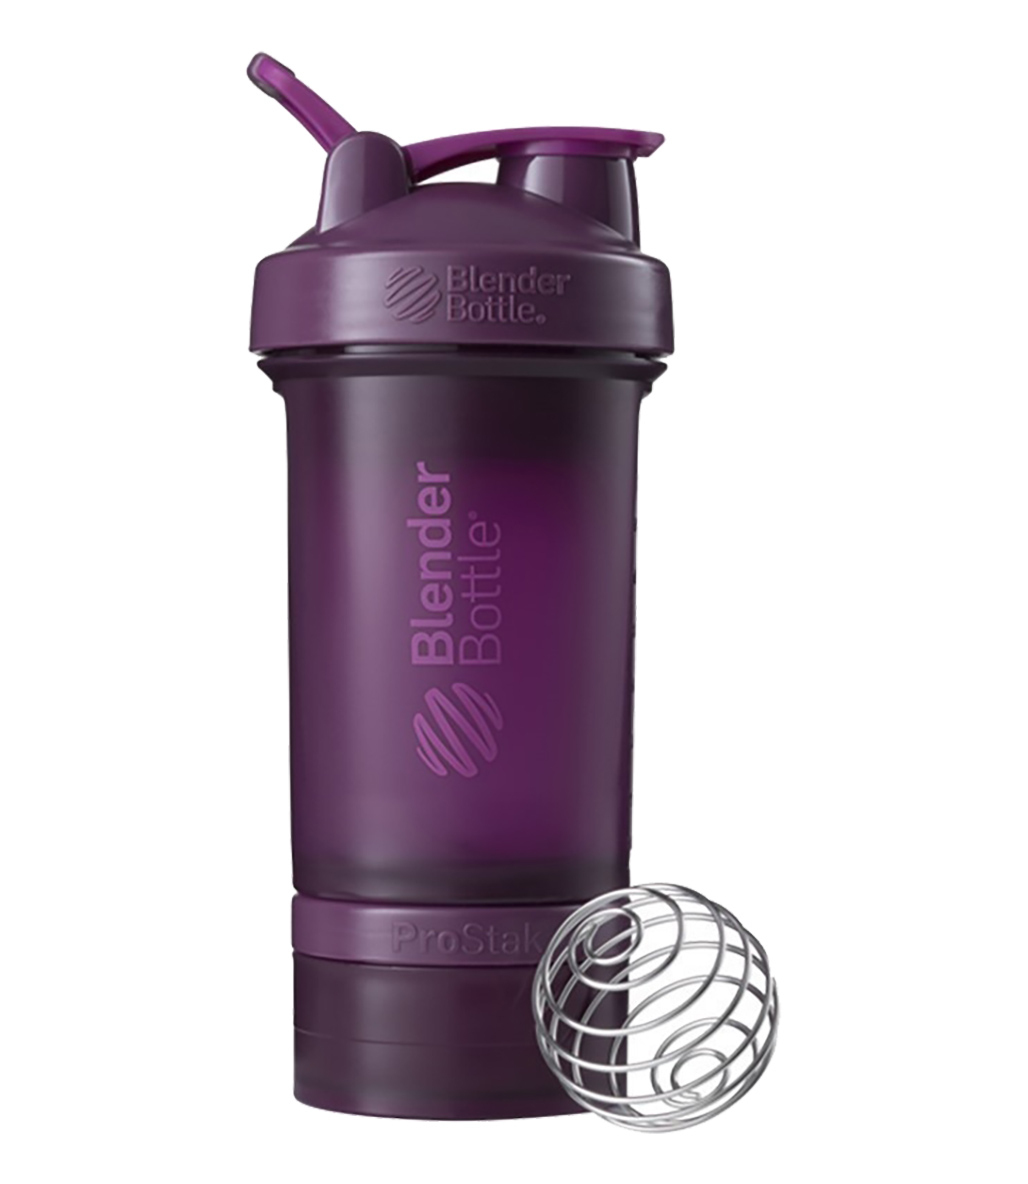 Blender Bottle Prostak Mor 450 ml